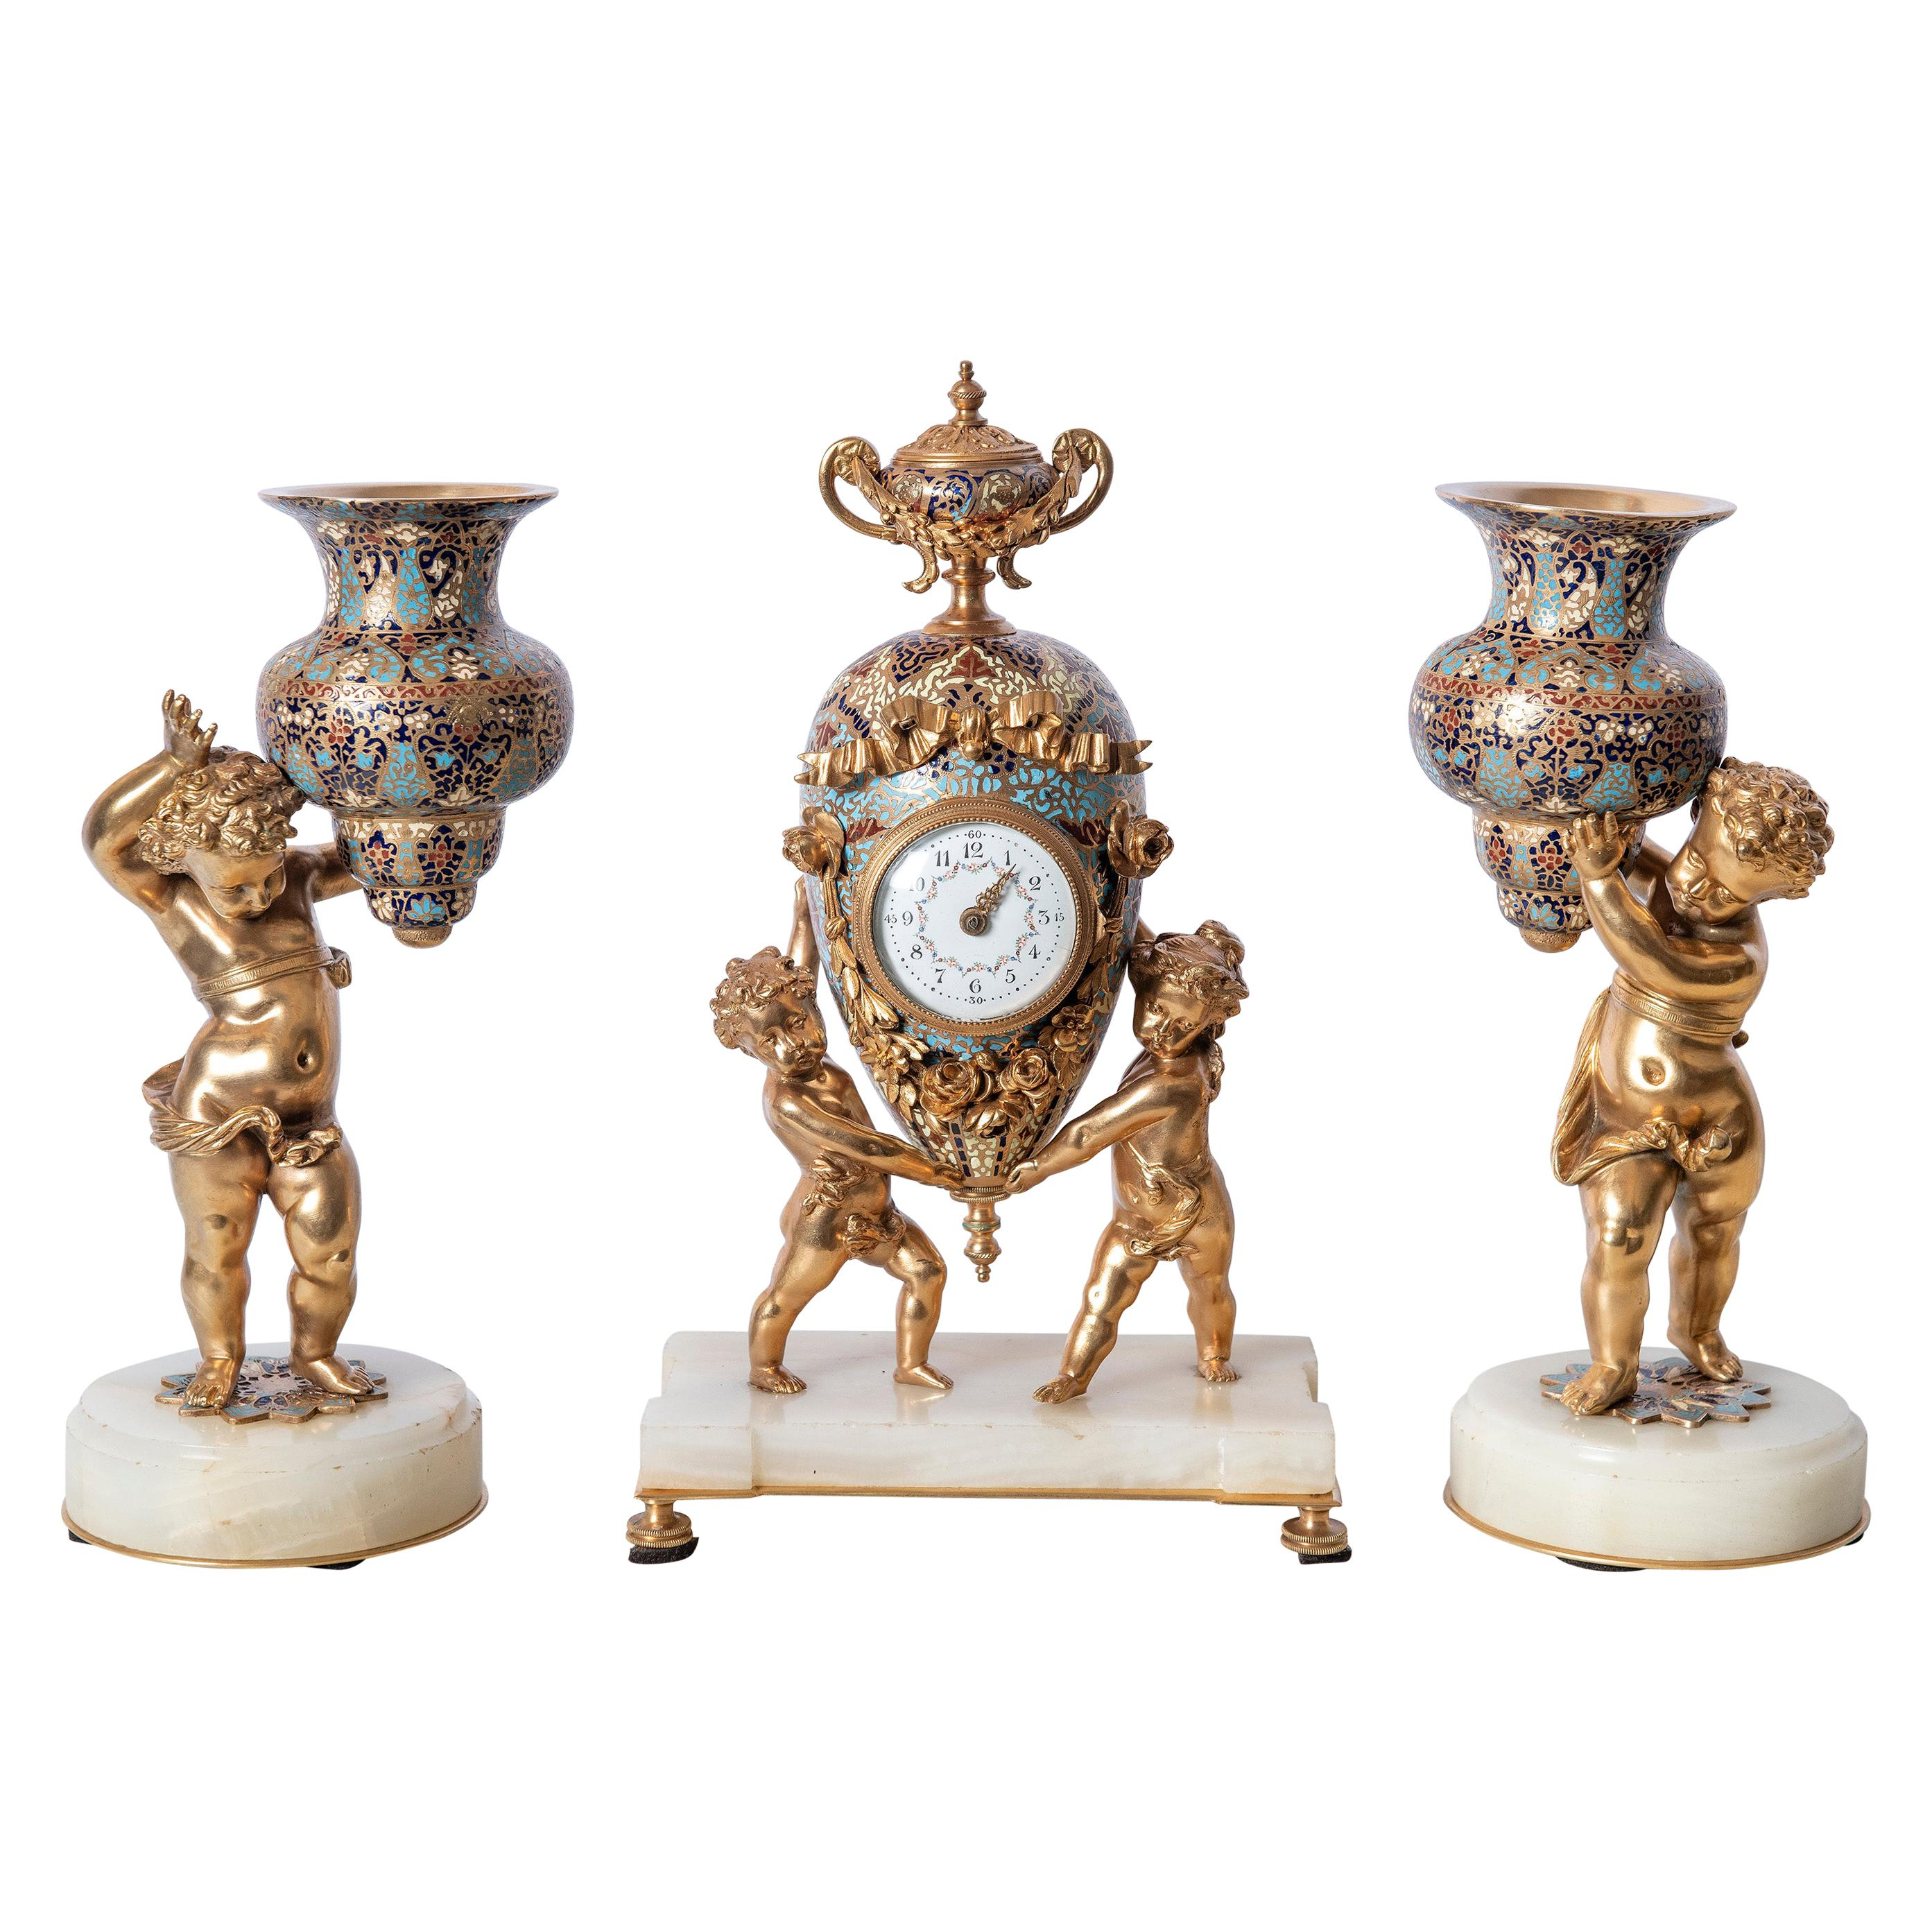 Gilt-Bronze and Cloisonné Garniture with Angels Figures, France, 19th Century